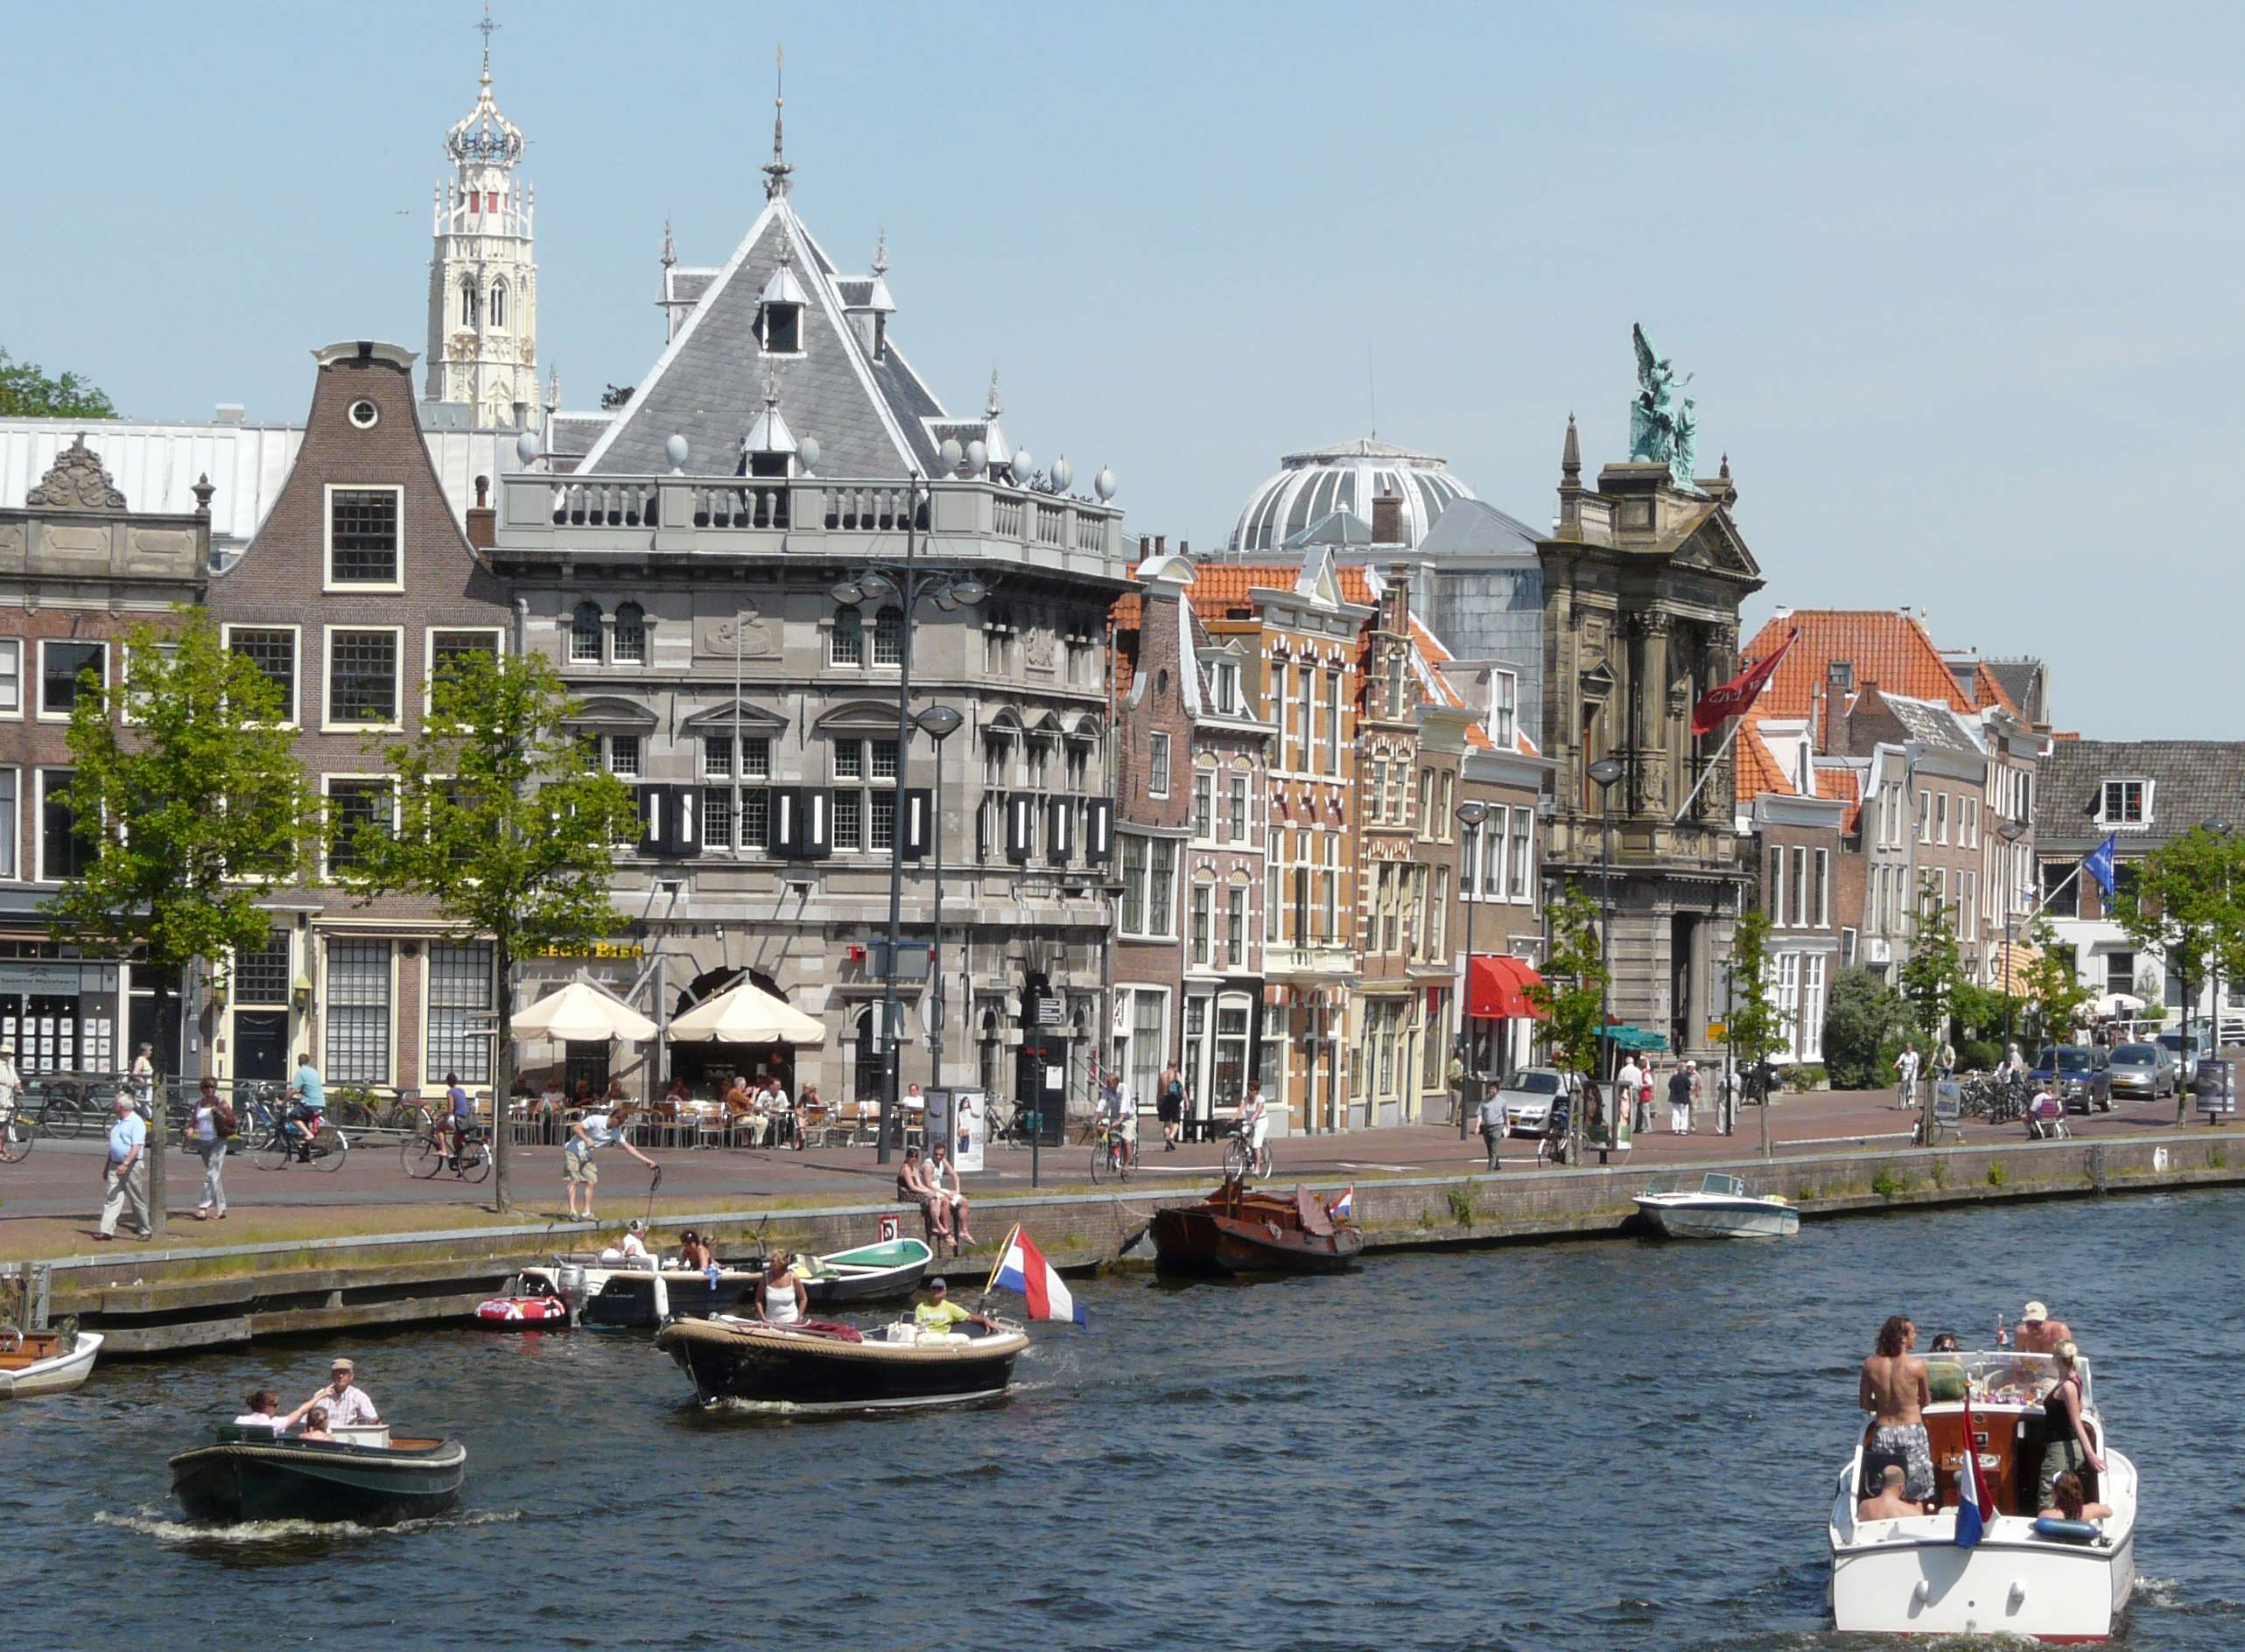 How To Track A Cell Phone Location >> Check out all the fun things to see at Haarlem, The Netherlands   BOOMSbeat